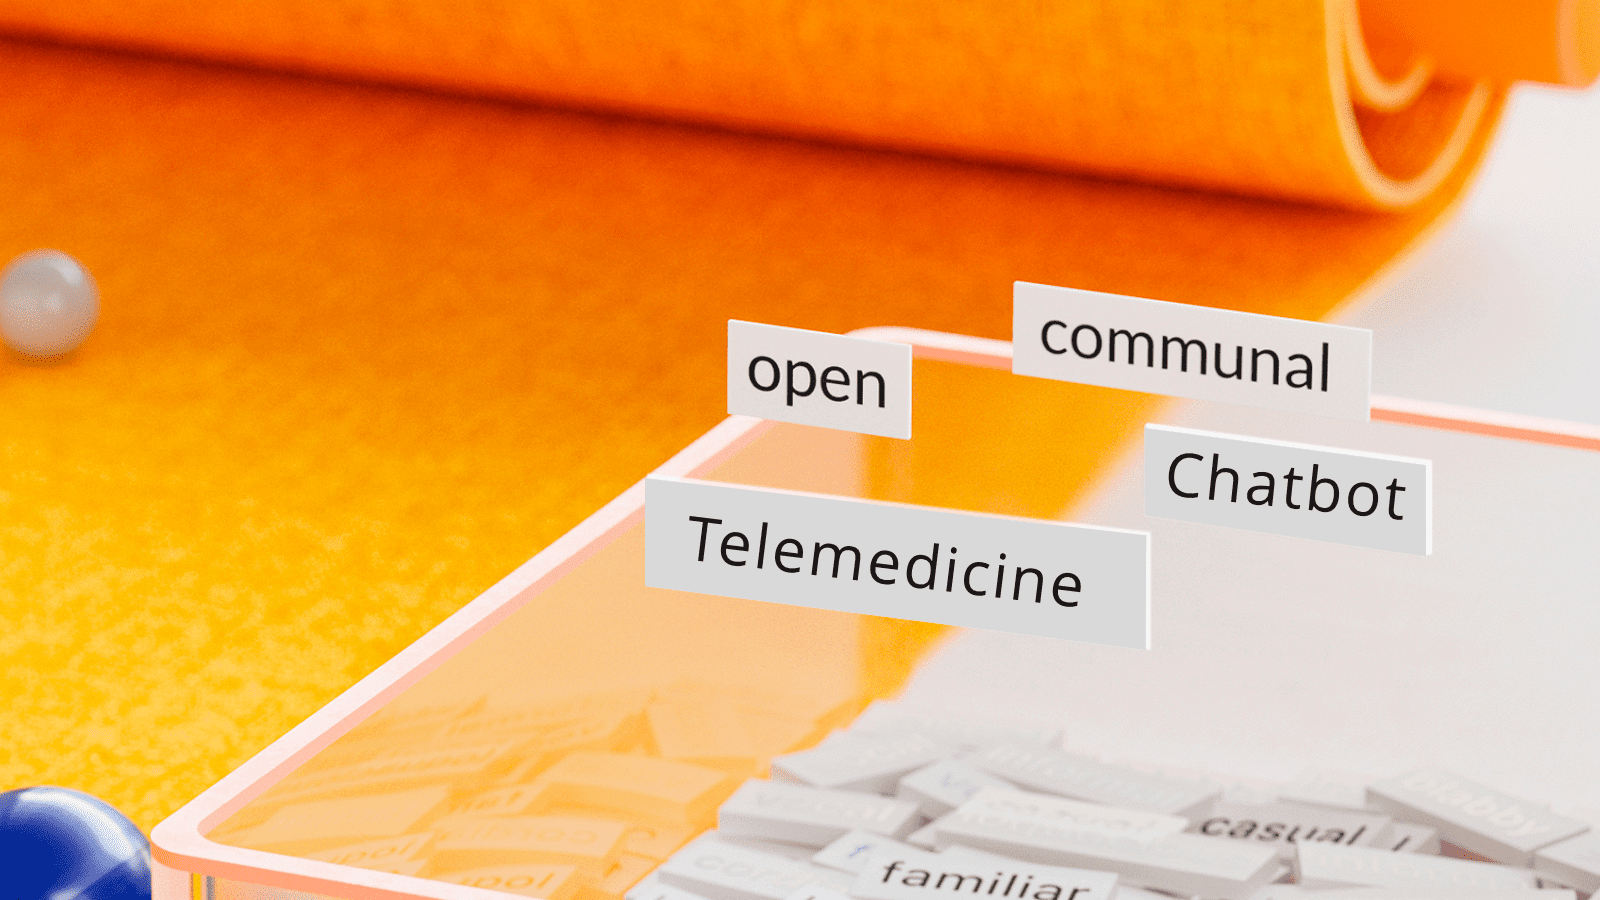 Telemedicine Chatbot : Next Wave Of Healthcare Automation